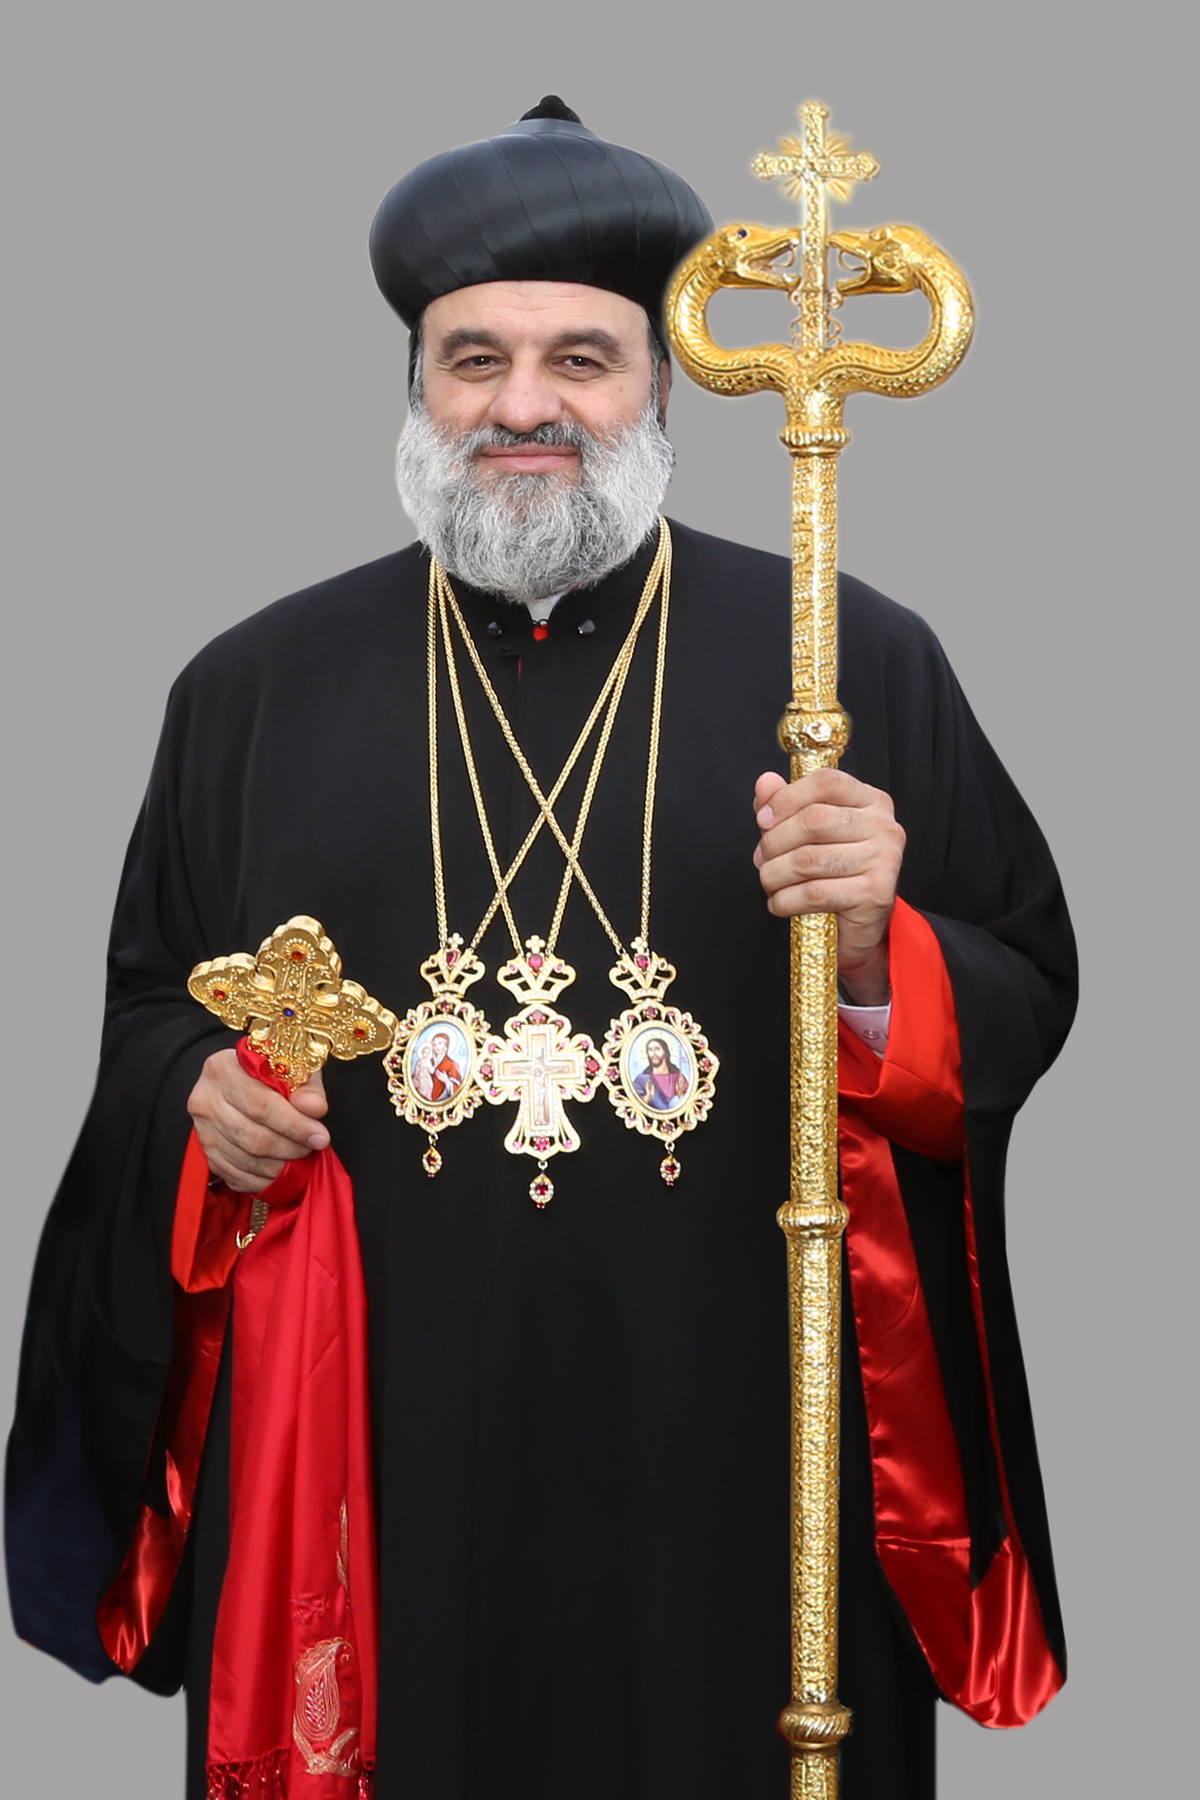 Patriarch | Syrian Orthodox Patriarchate of Antioch